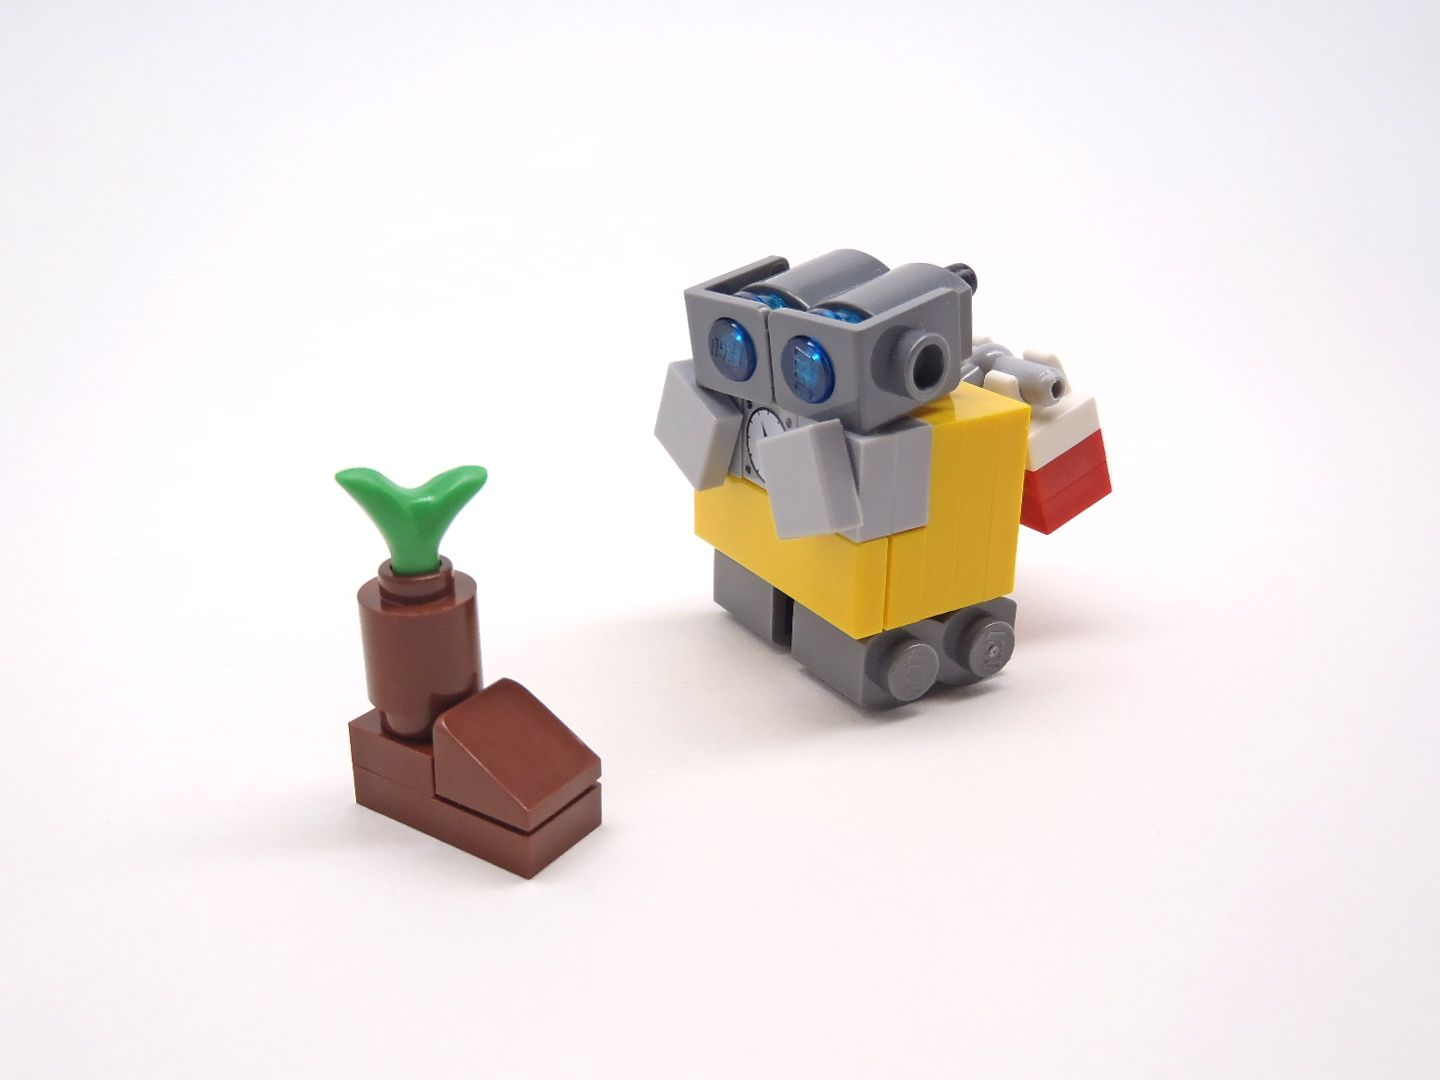 lego microscale wall e moc lego lego lego pinterest lego legos and lego stuff. Black Bedroom Furniture Sets. Home Design Ideas